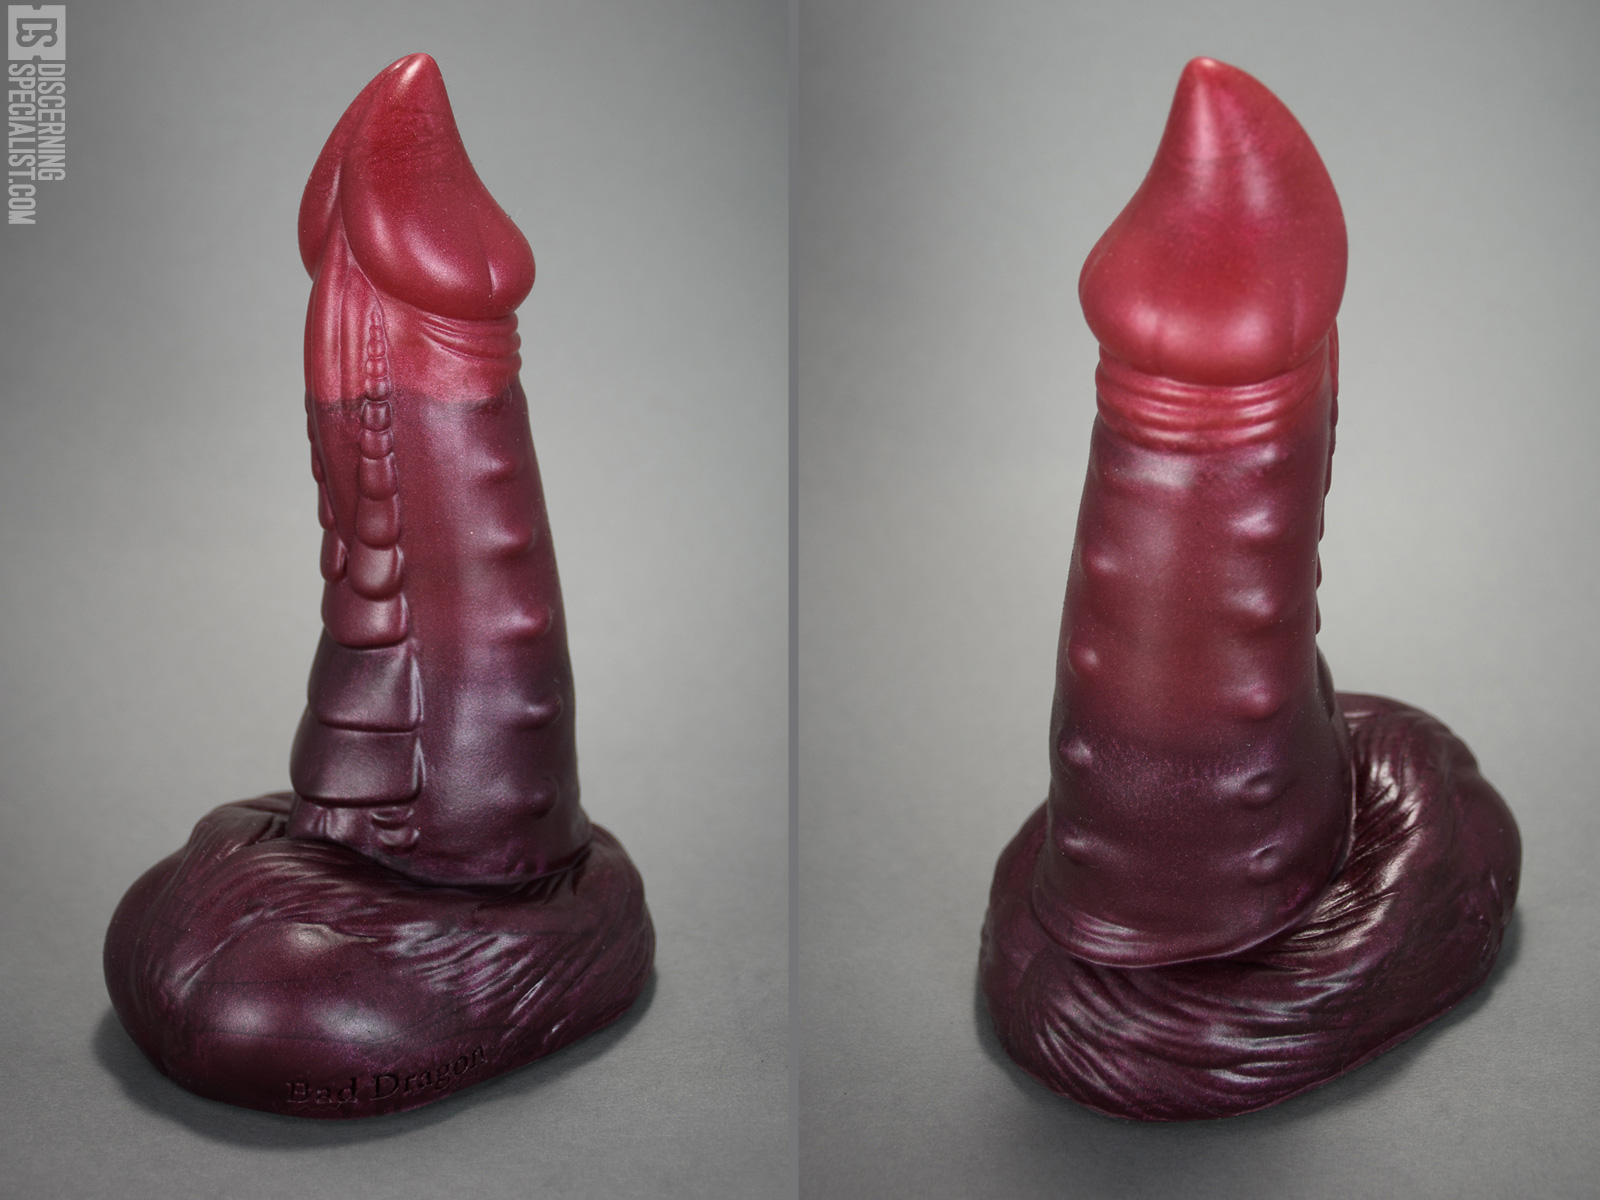 Painful sex toys